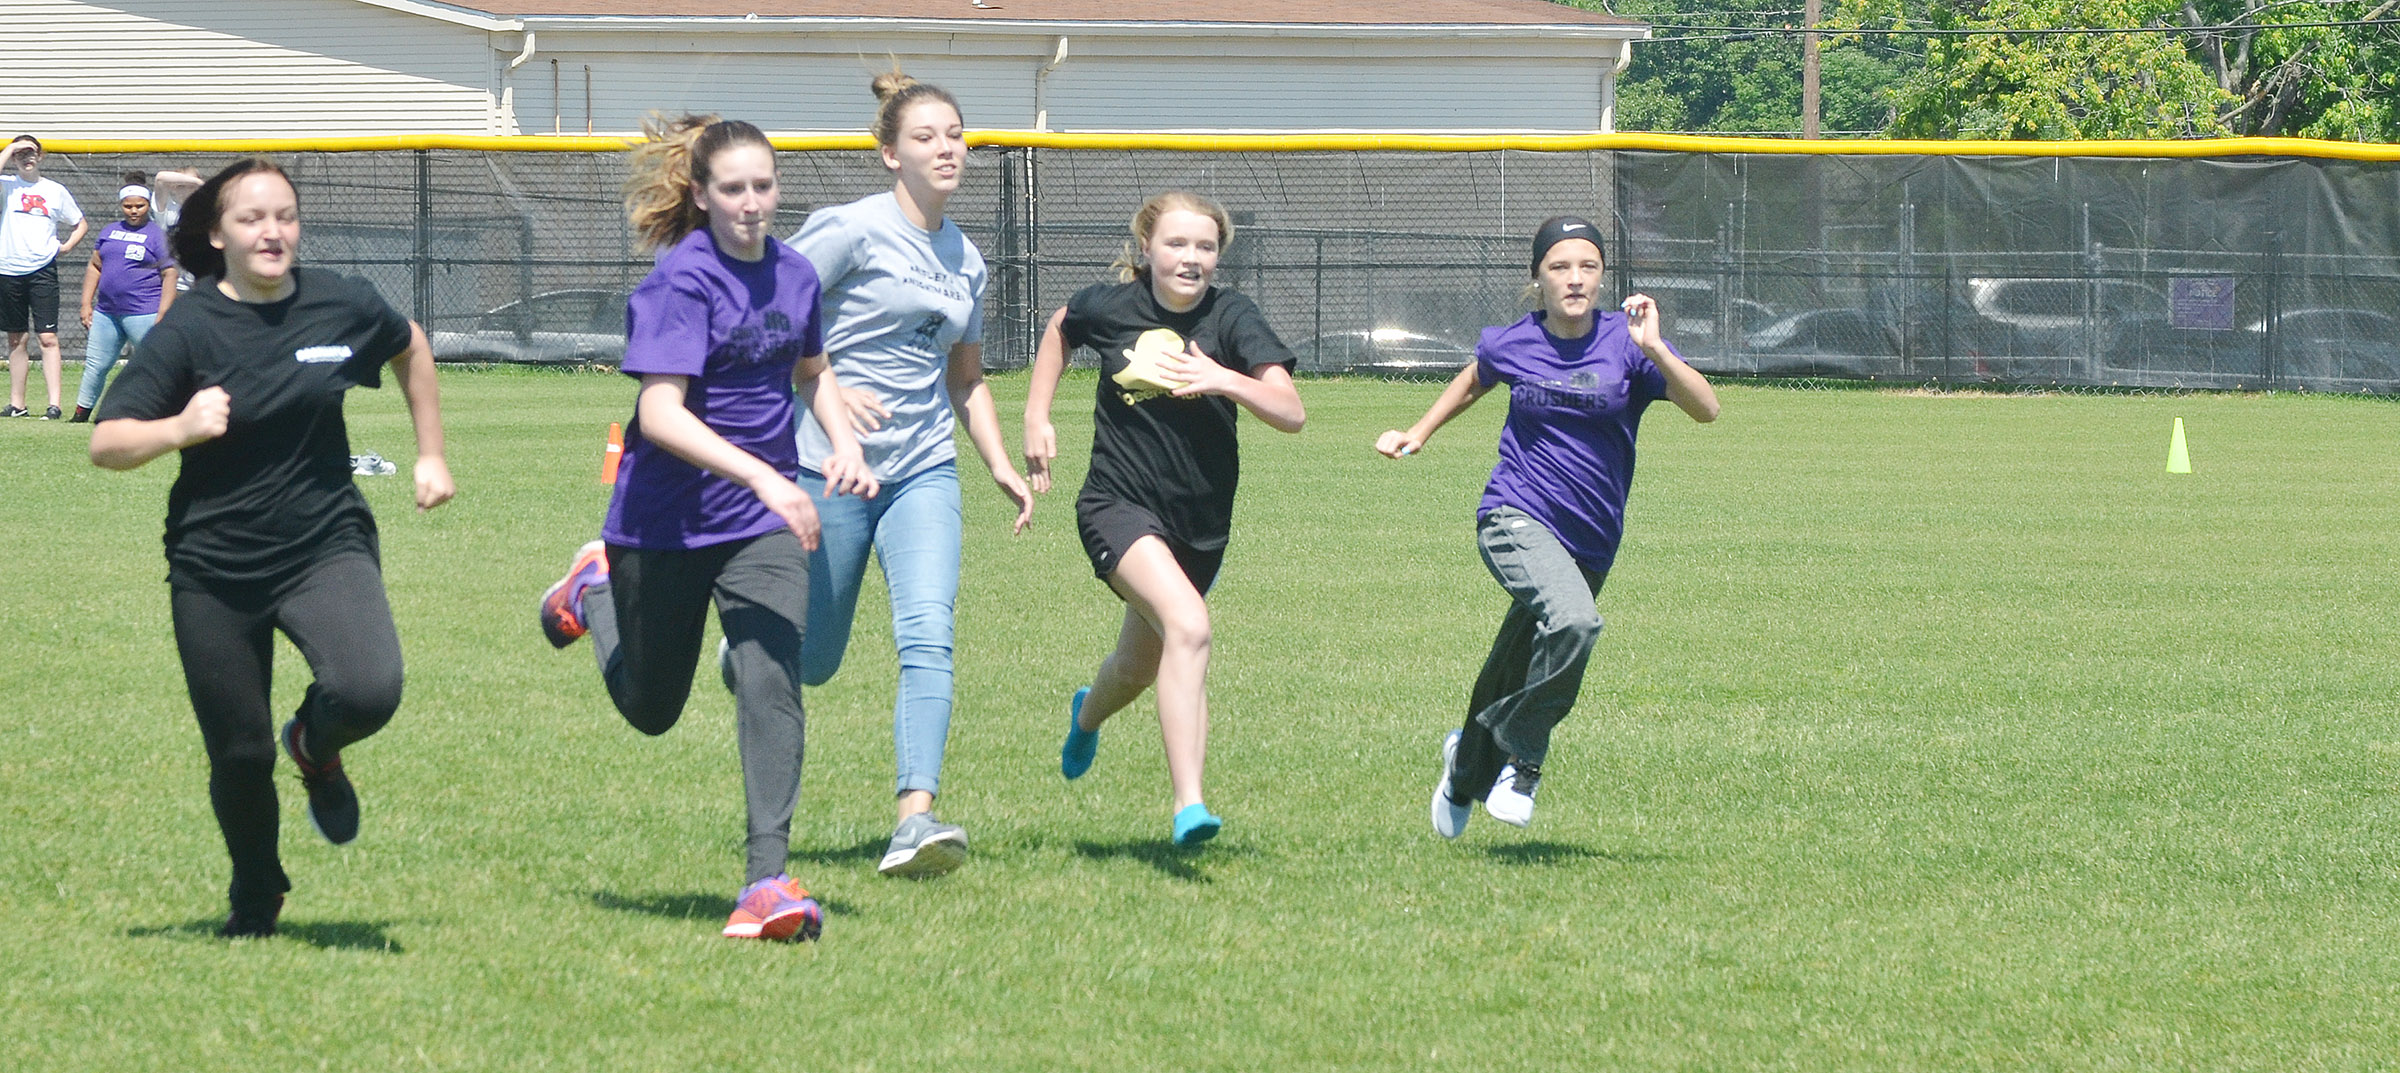 From left, CMS eighth-graders Destiny Hicks, Zoie Sidebottom, Autumn Harvey, Alanna Atwood and Carly Adams run in the 50-yard dash.